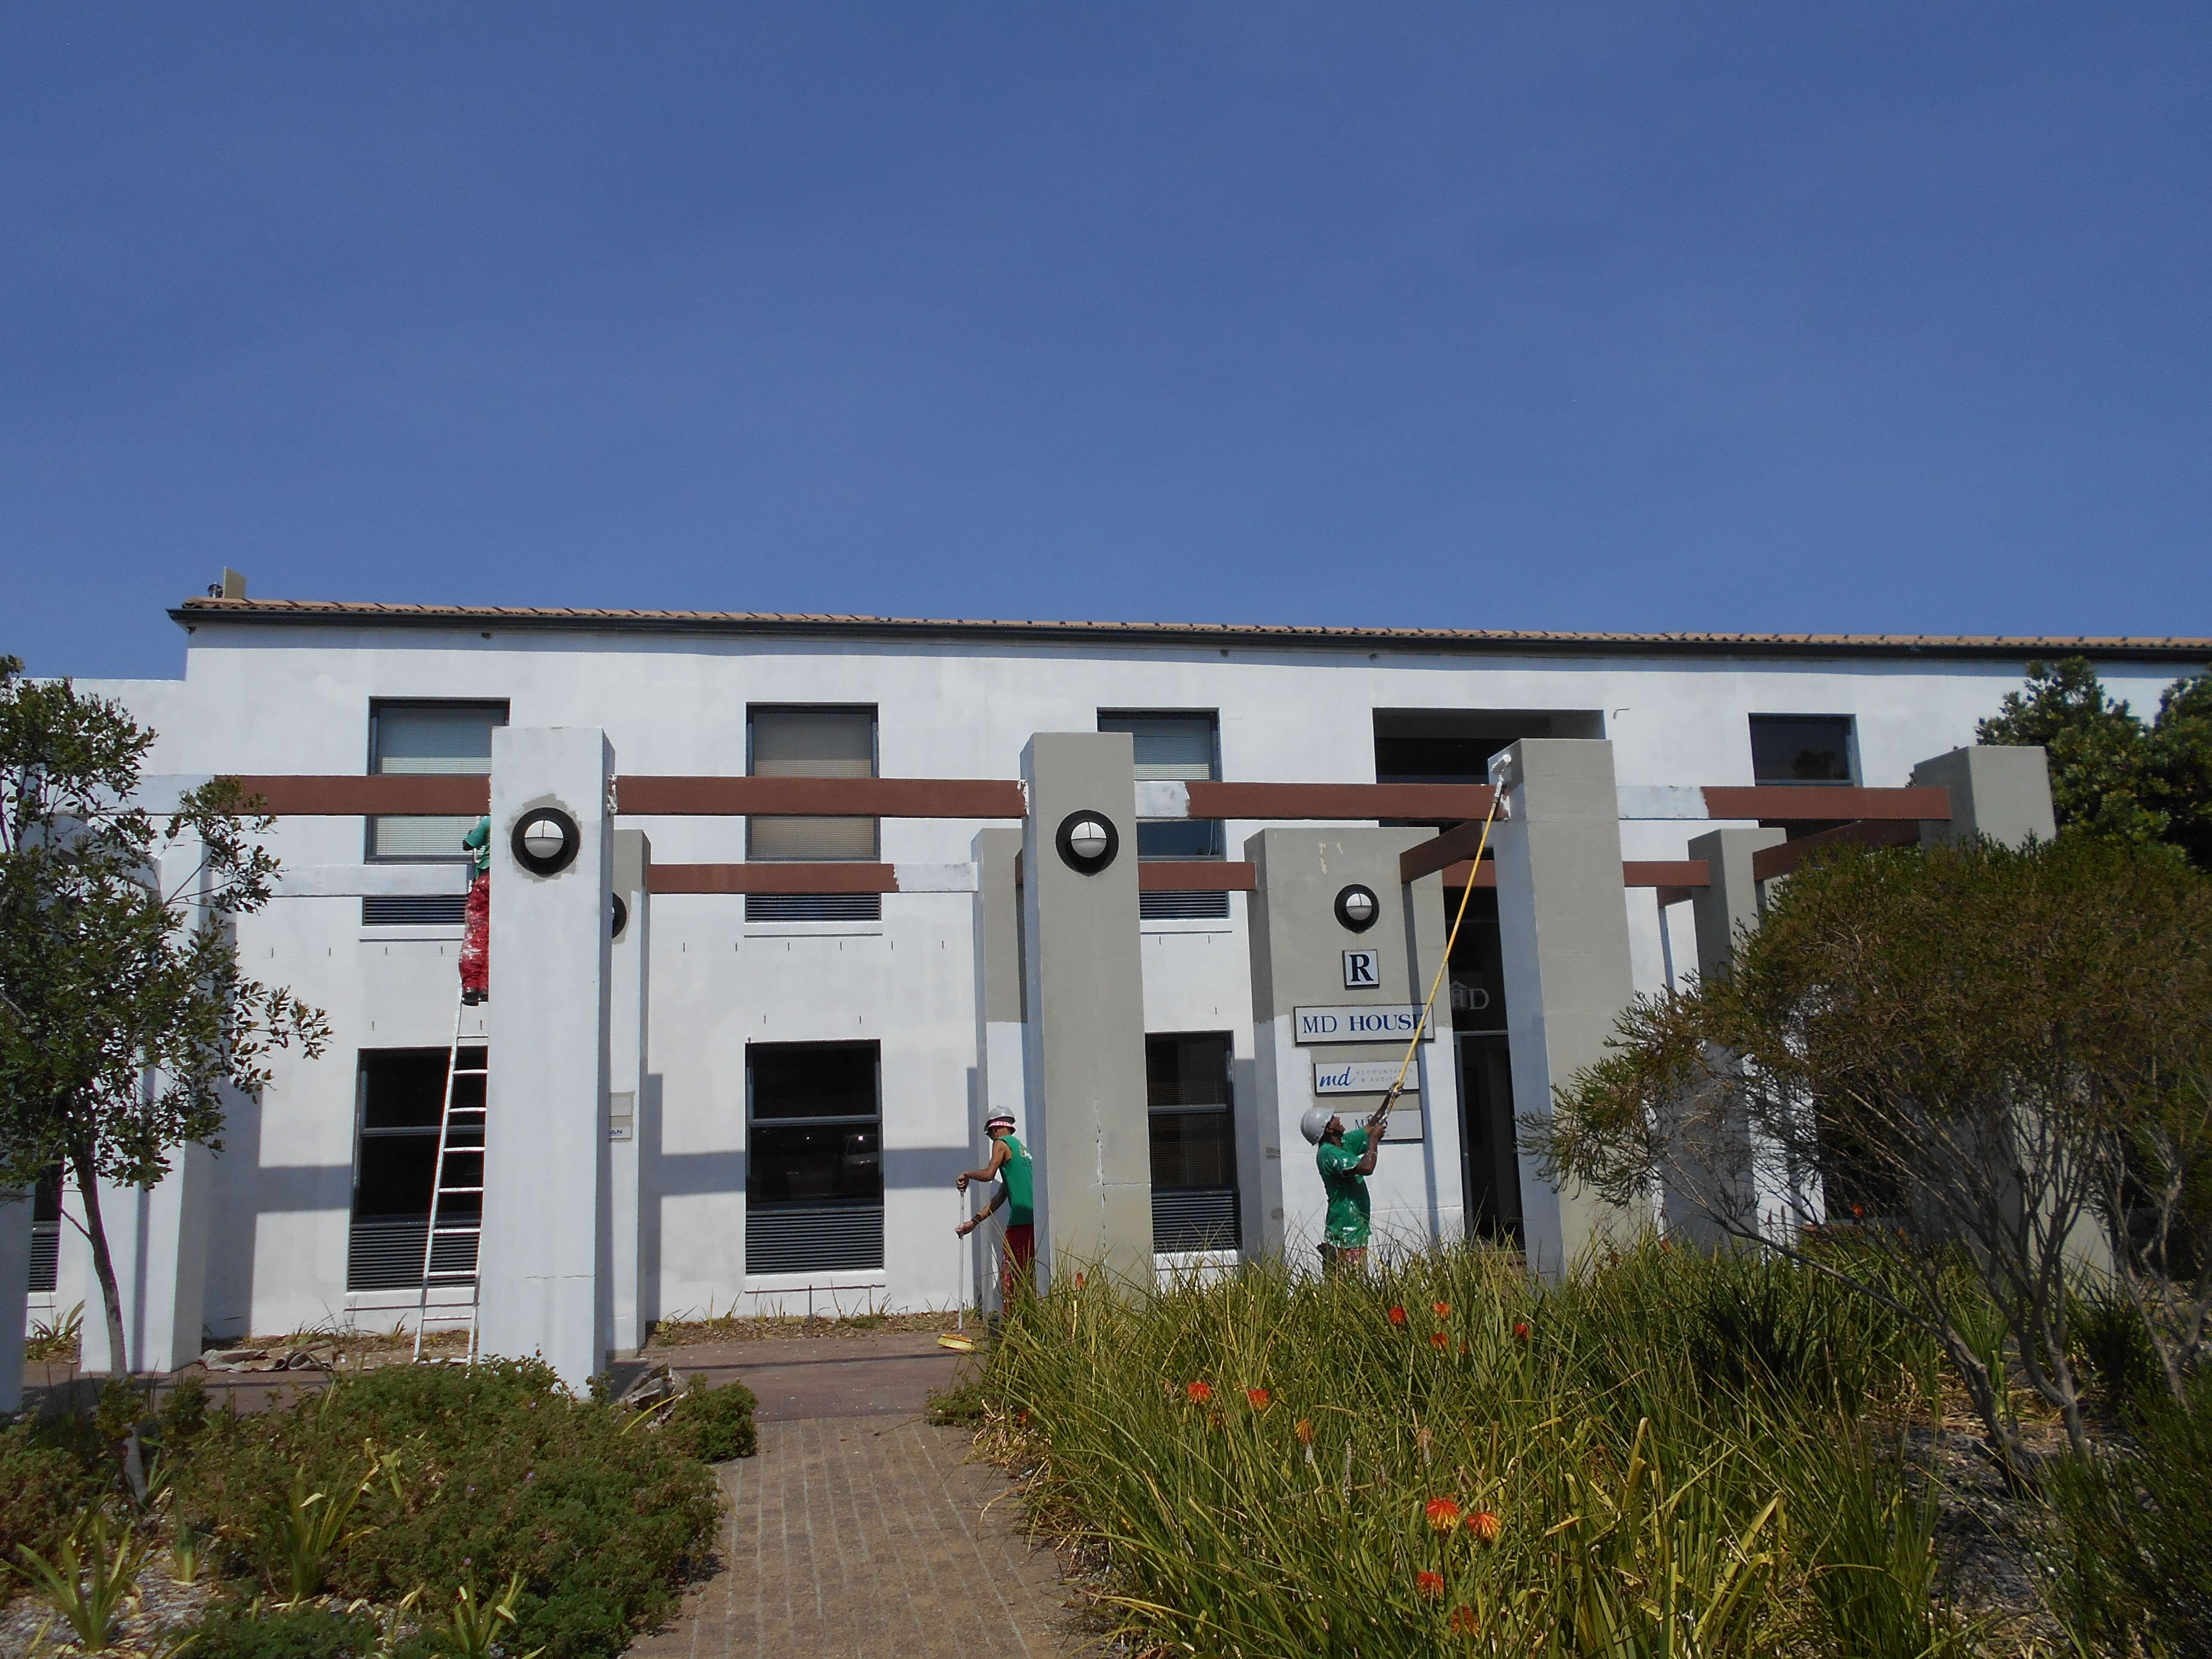 Indawo painting and waterproofing